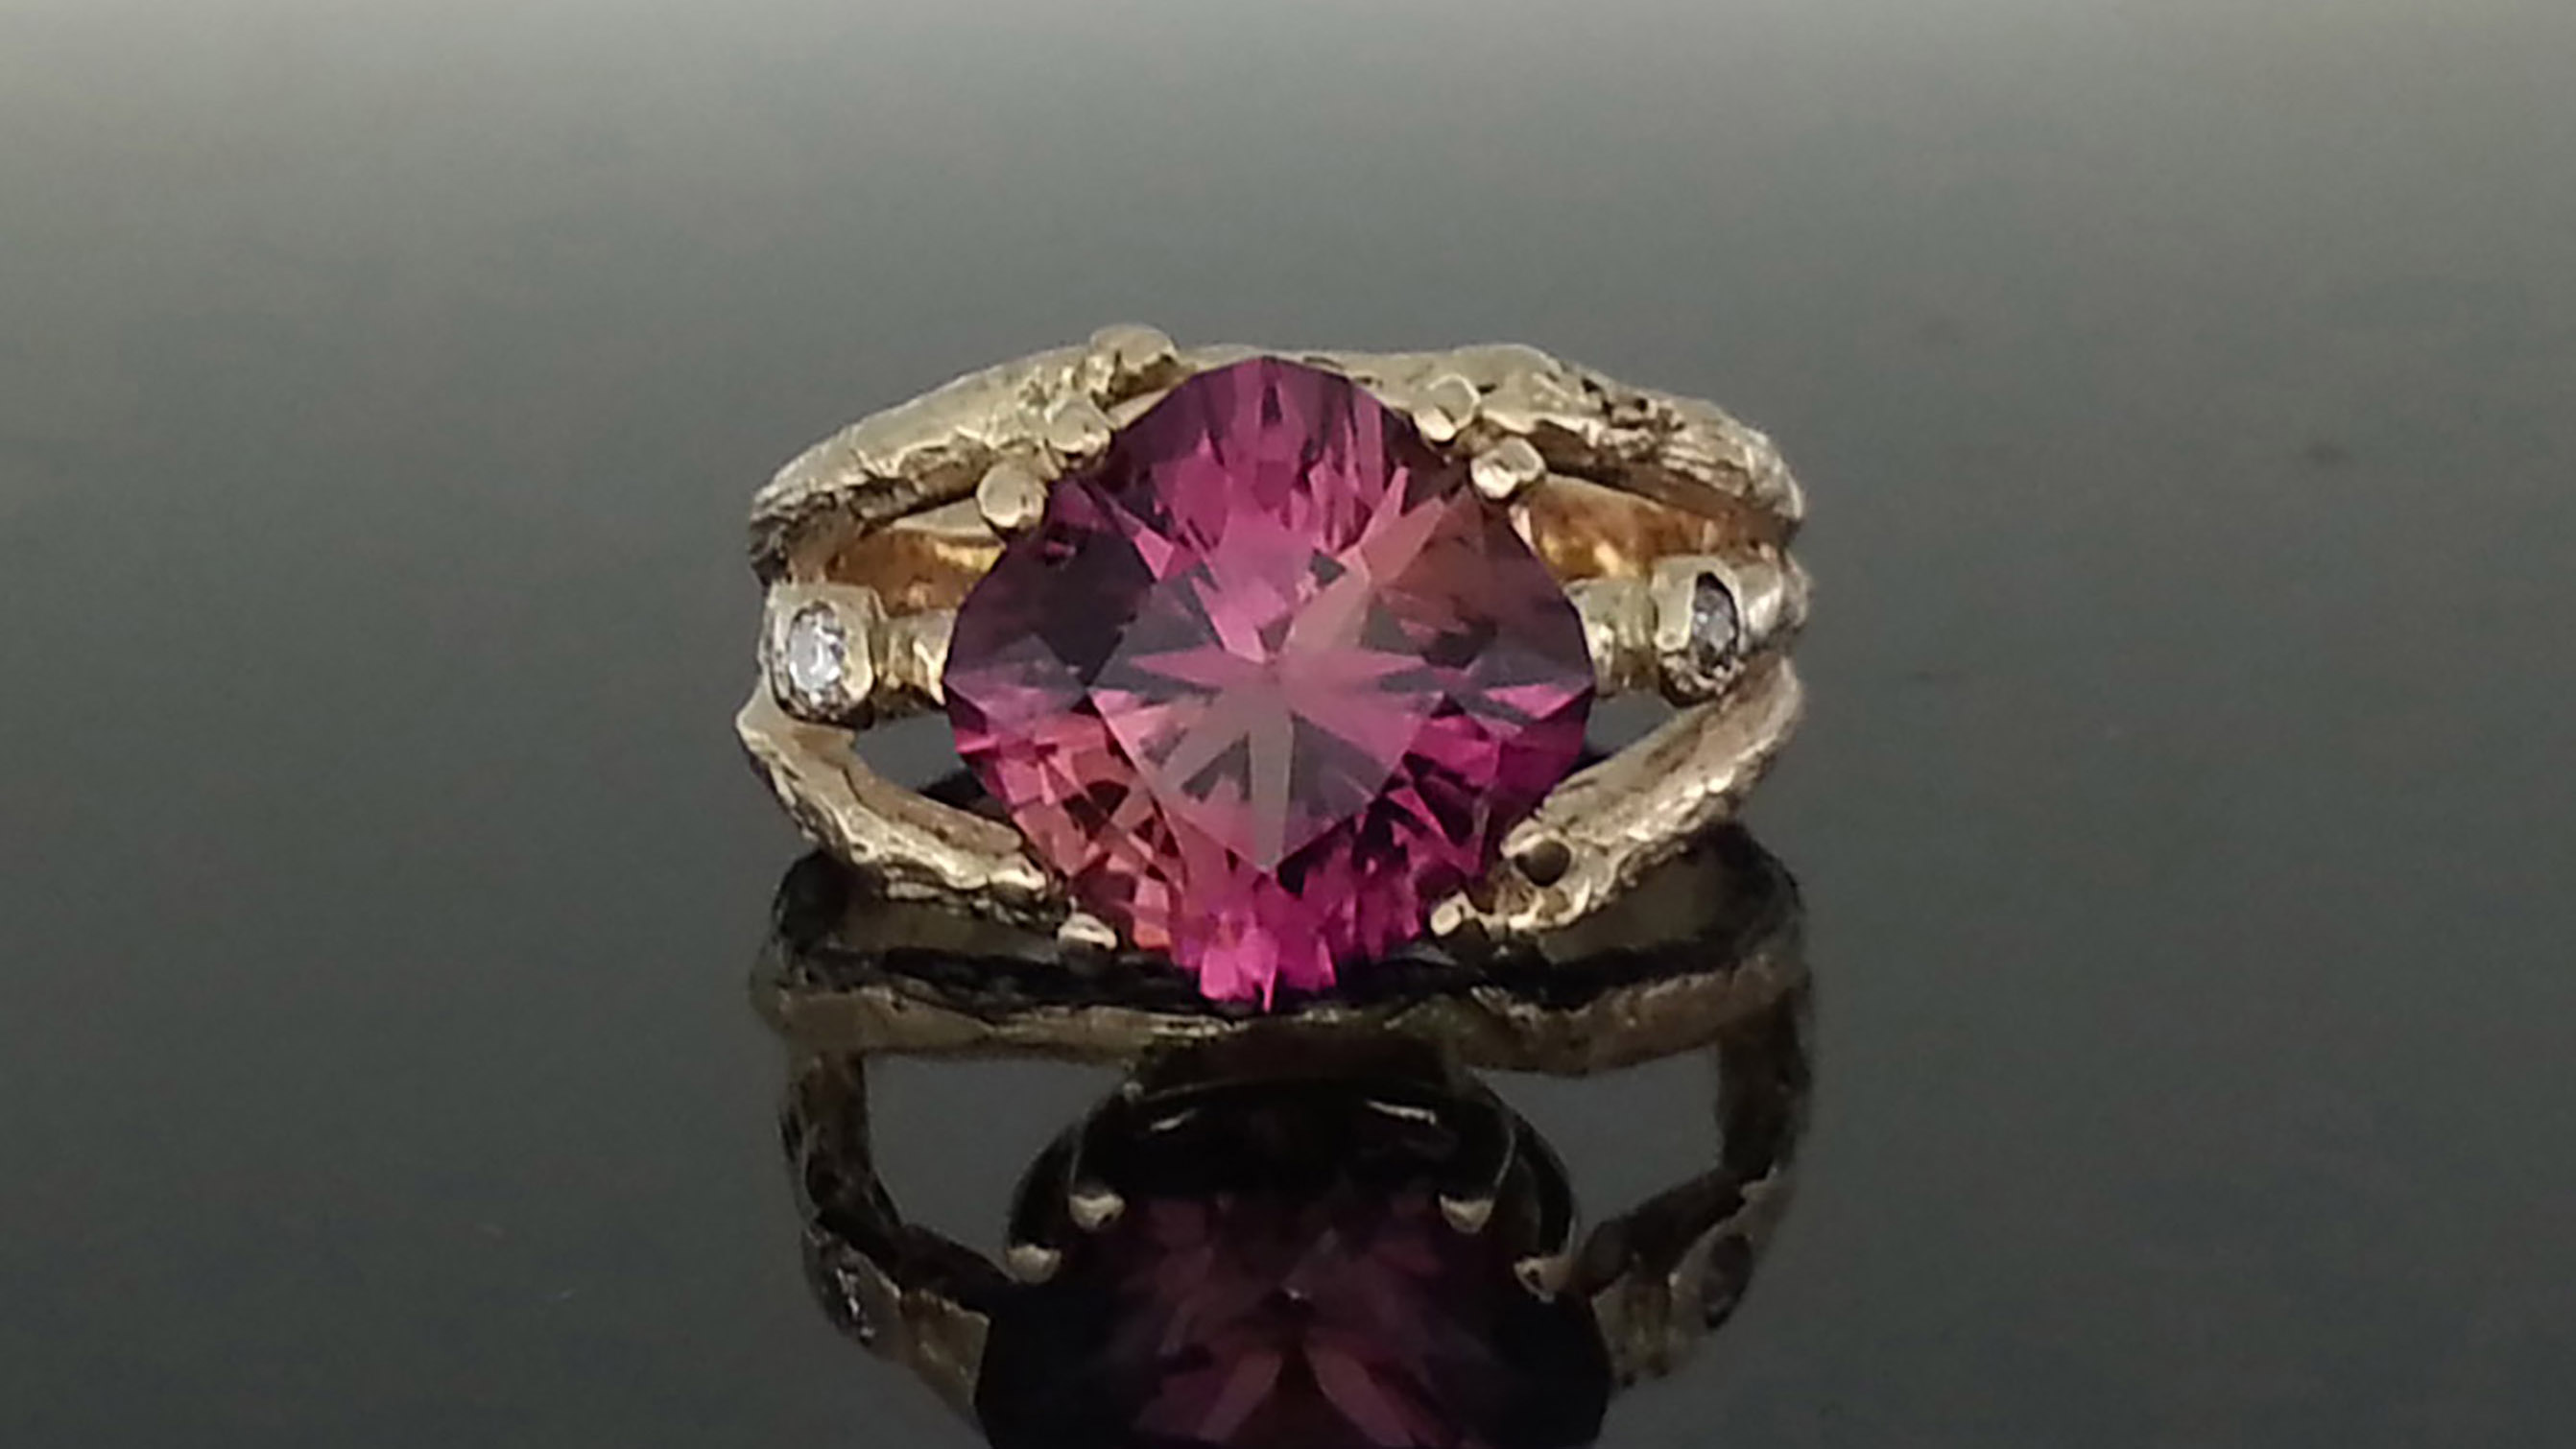 14K Gold Branch Ring with Tourmaline and Diamond